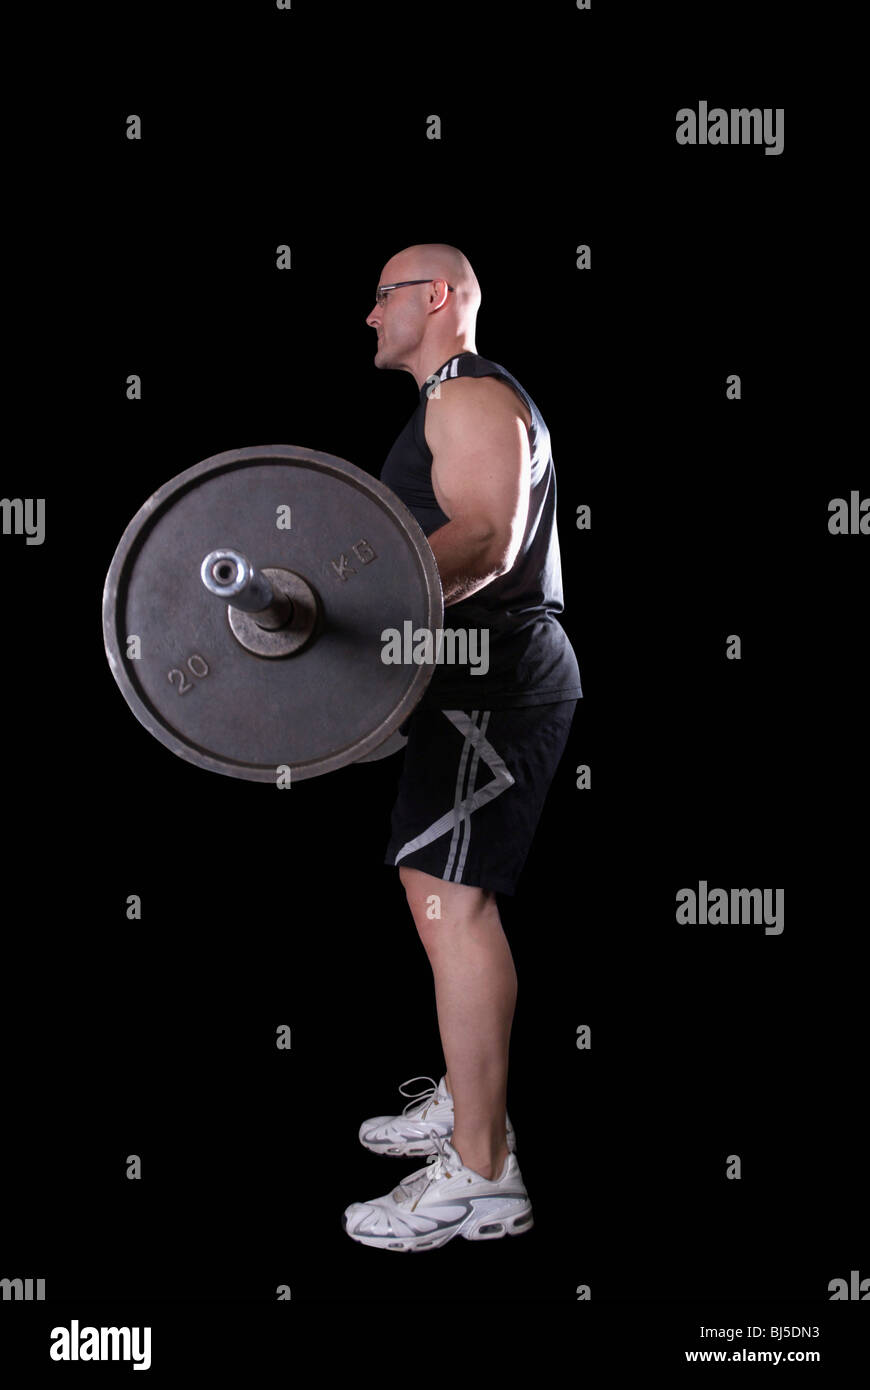 bodybuilder doing biceps curls - Stock Image